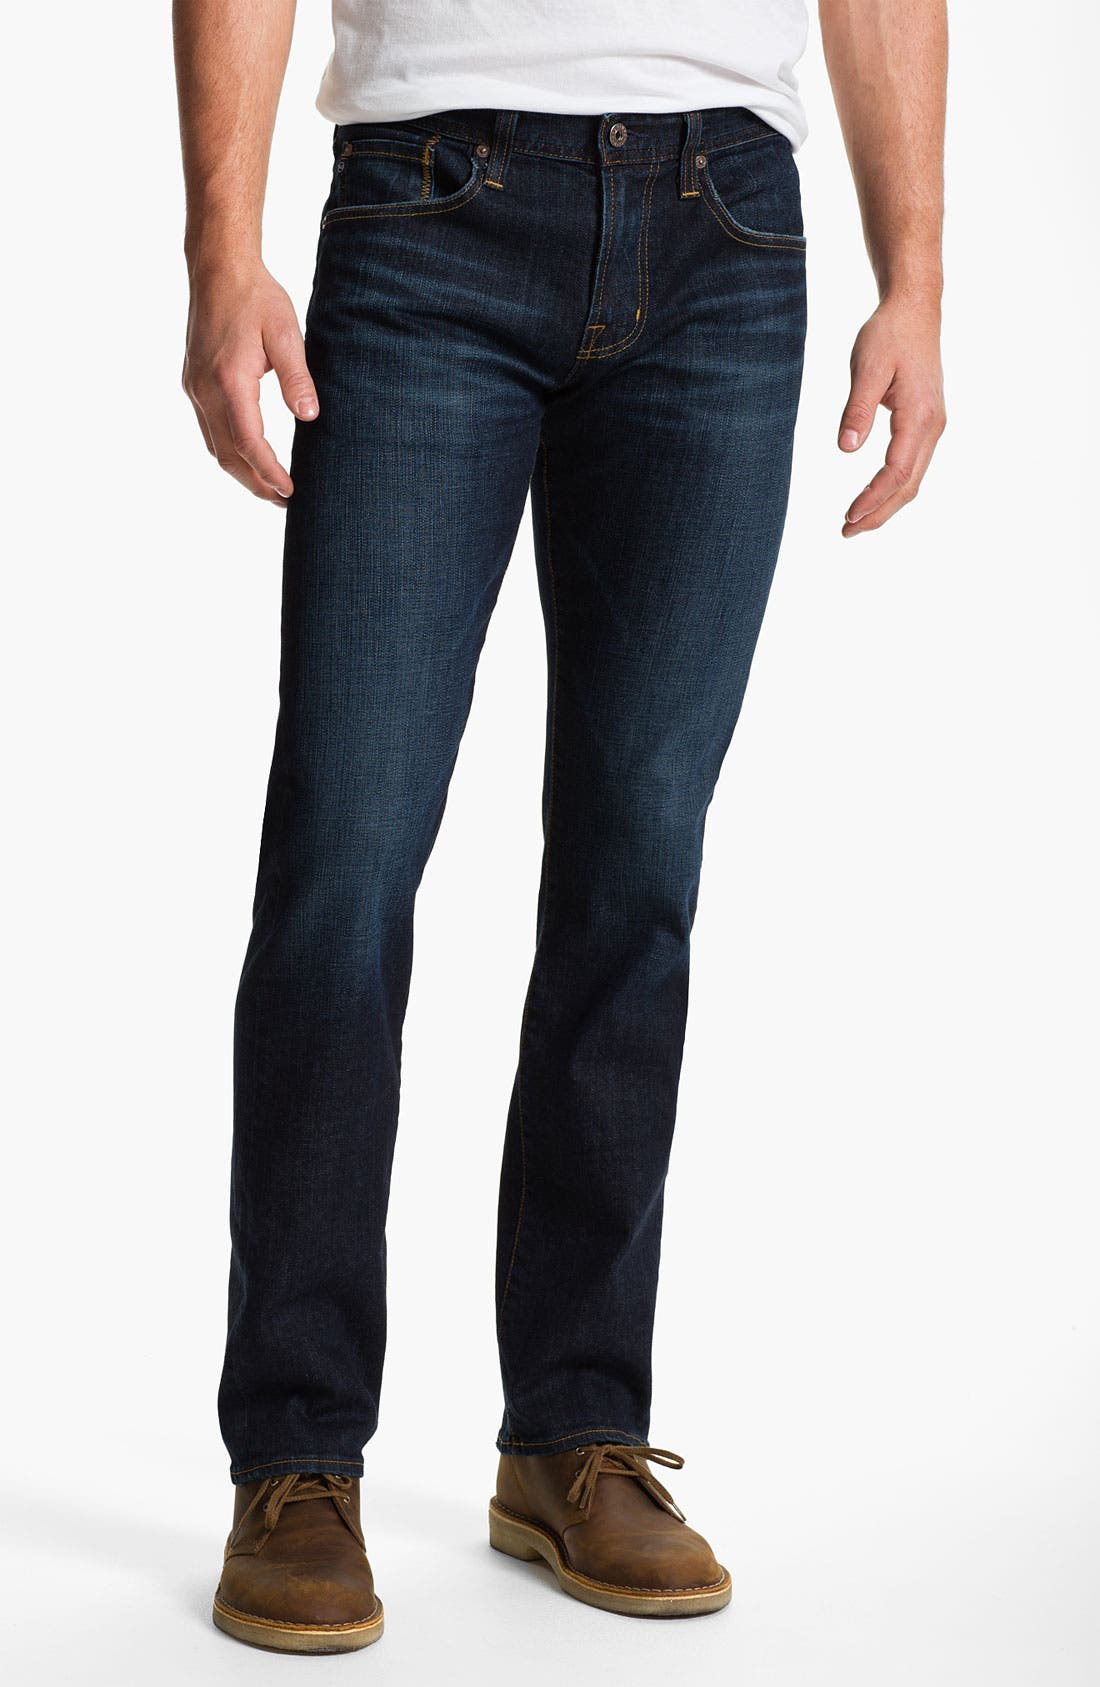 Alternate Image 1 Selected - AG Jeans 'Matchbox' Slim Fit Jeans (Robinson)